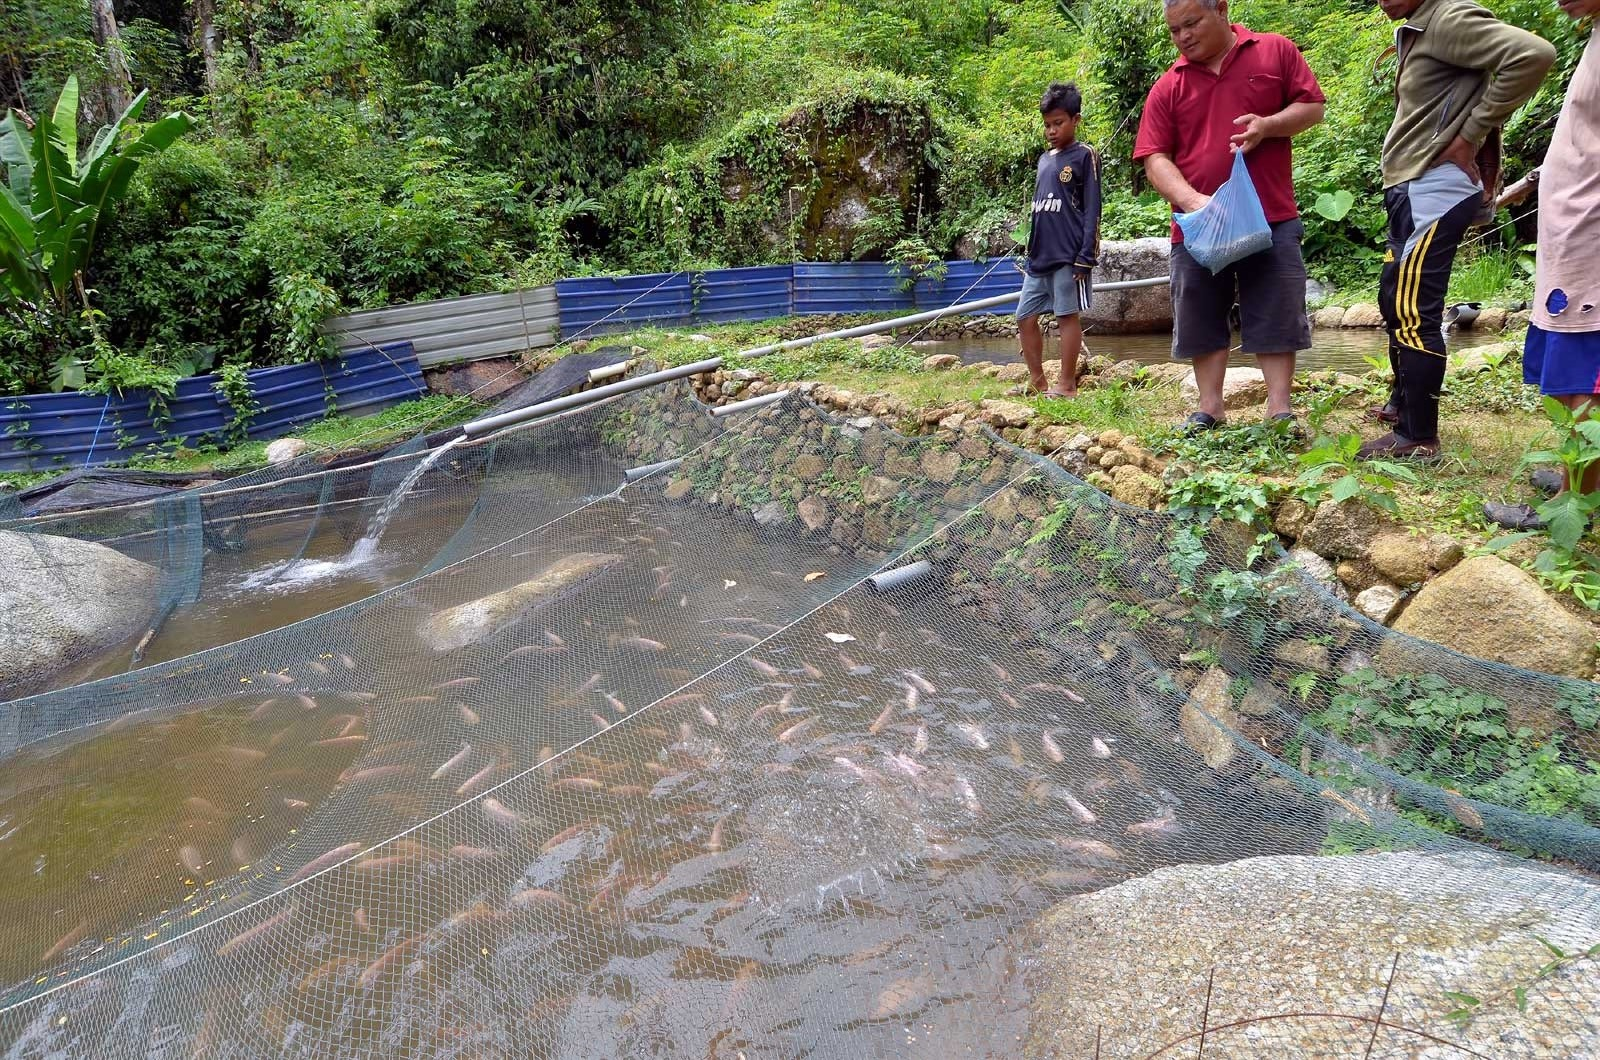 Fish farm at Kg Sekam